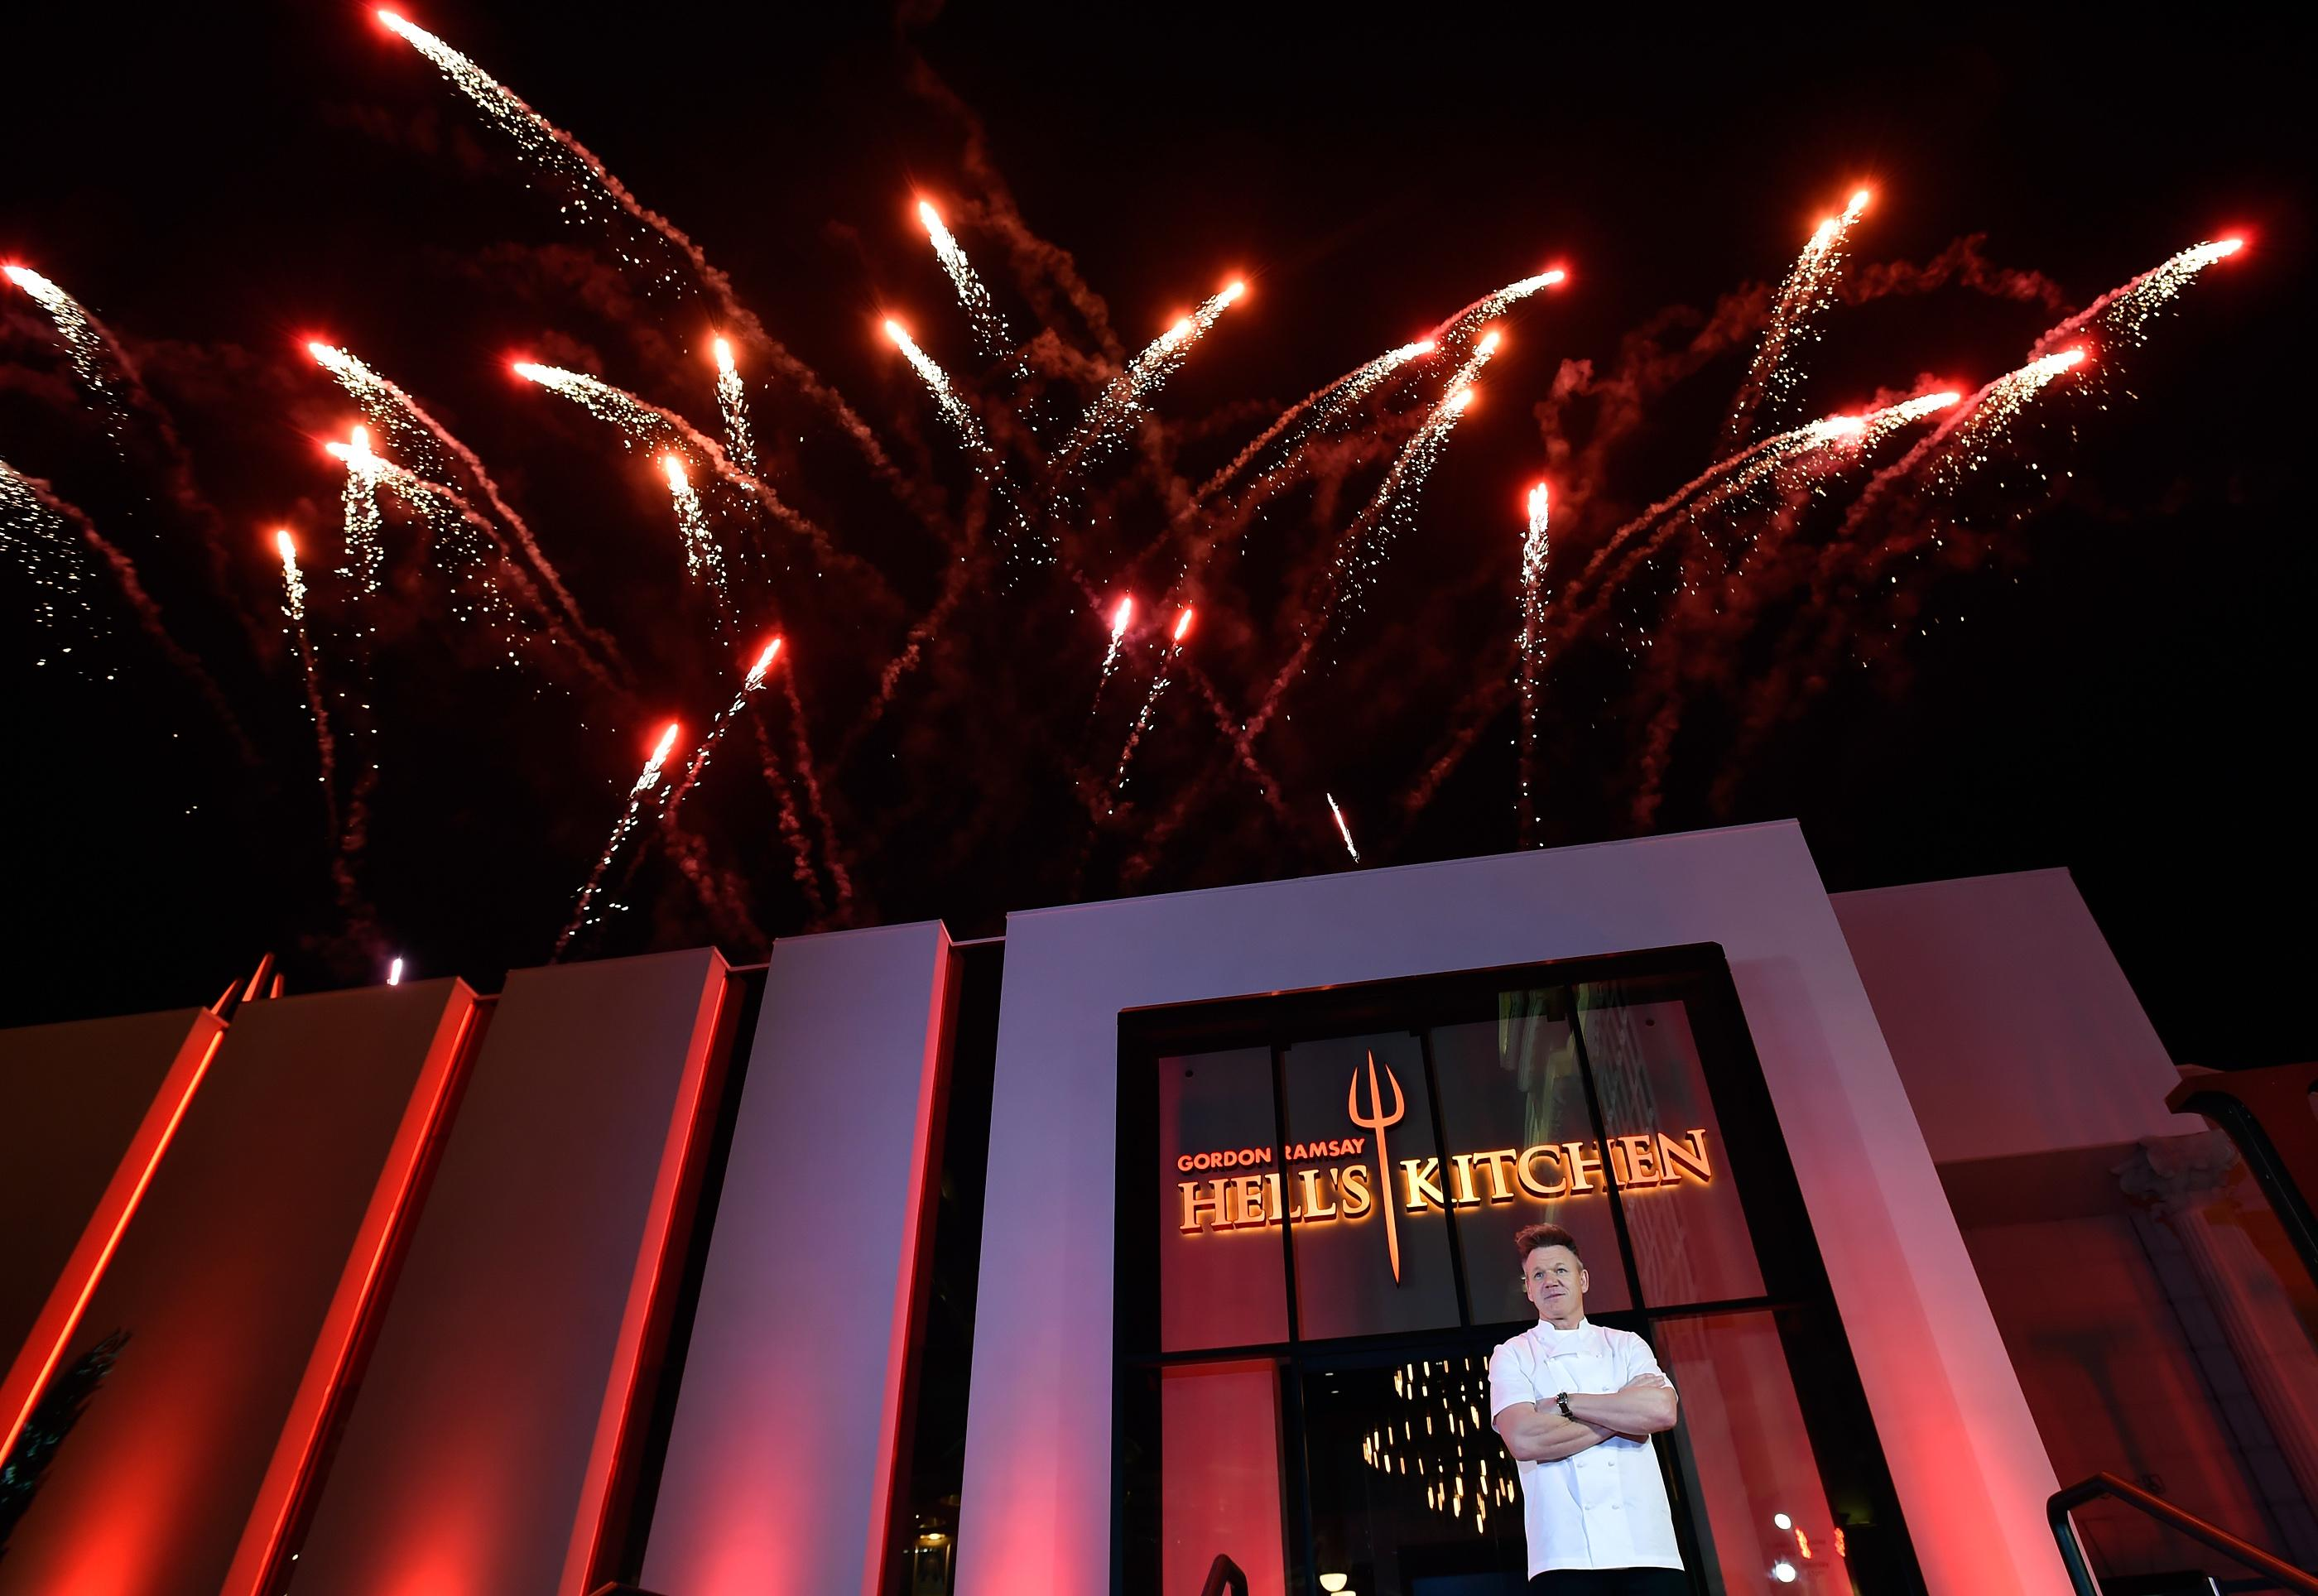 Fireworks explode as chef Gordon Ramsay poses during the grand opening of Gordon Ramsay Hell's Kitchen at Caesars Palace Friday, Jan. 26, 2018, in Las Vegas. CREDIT: David Becker/Las Vegas News Bureau